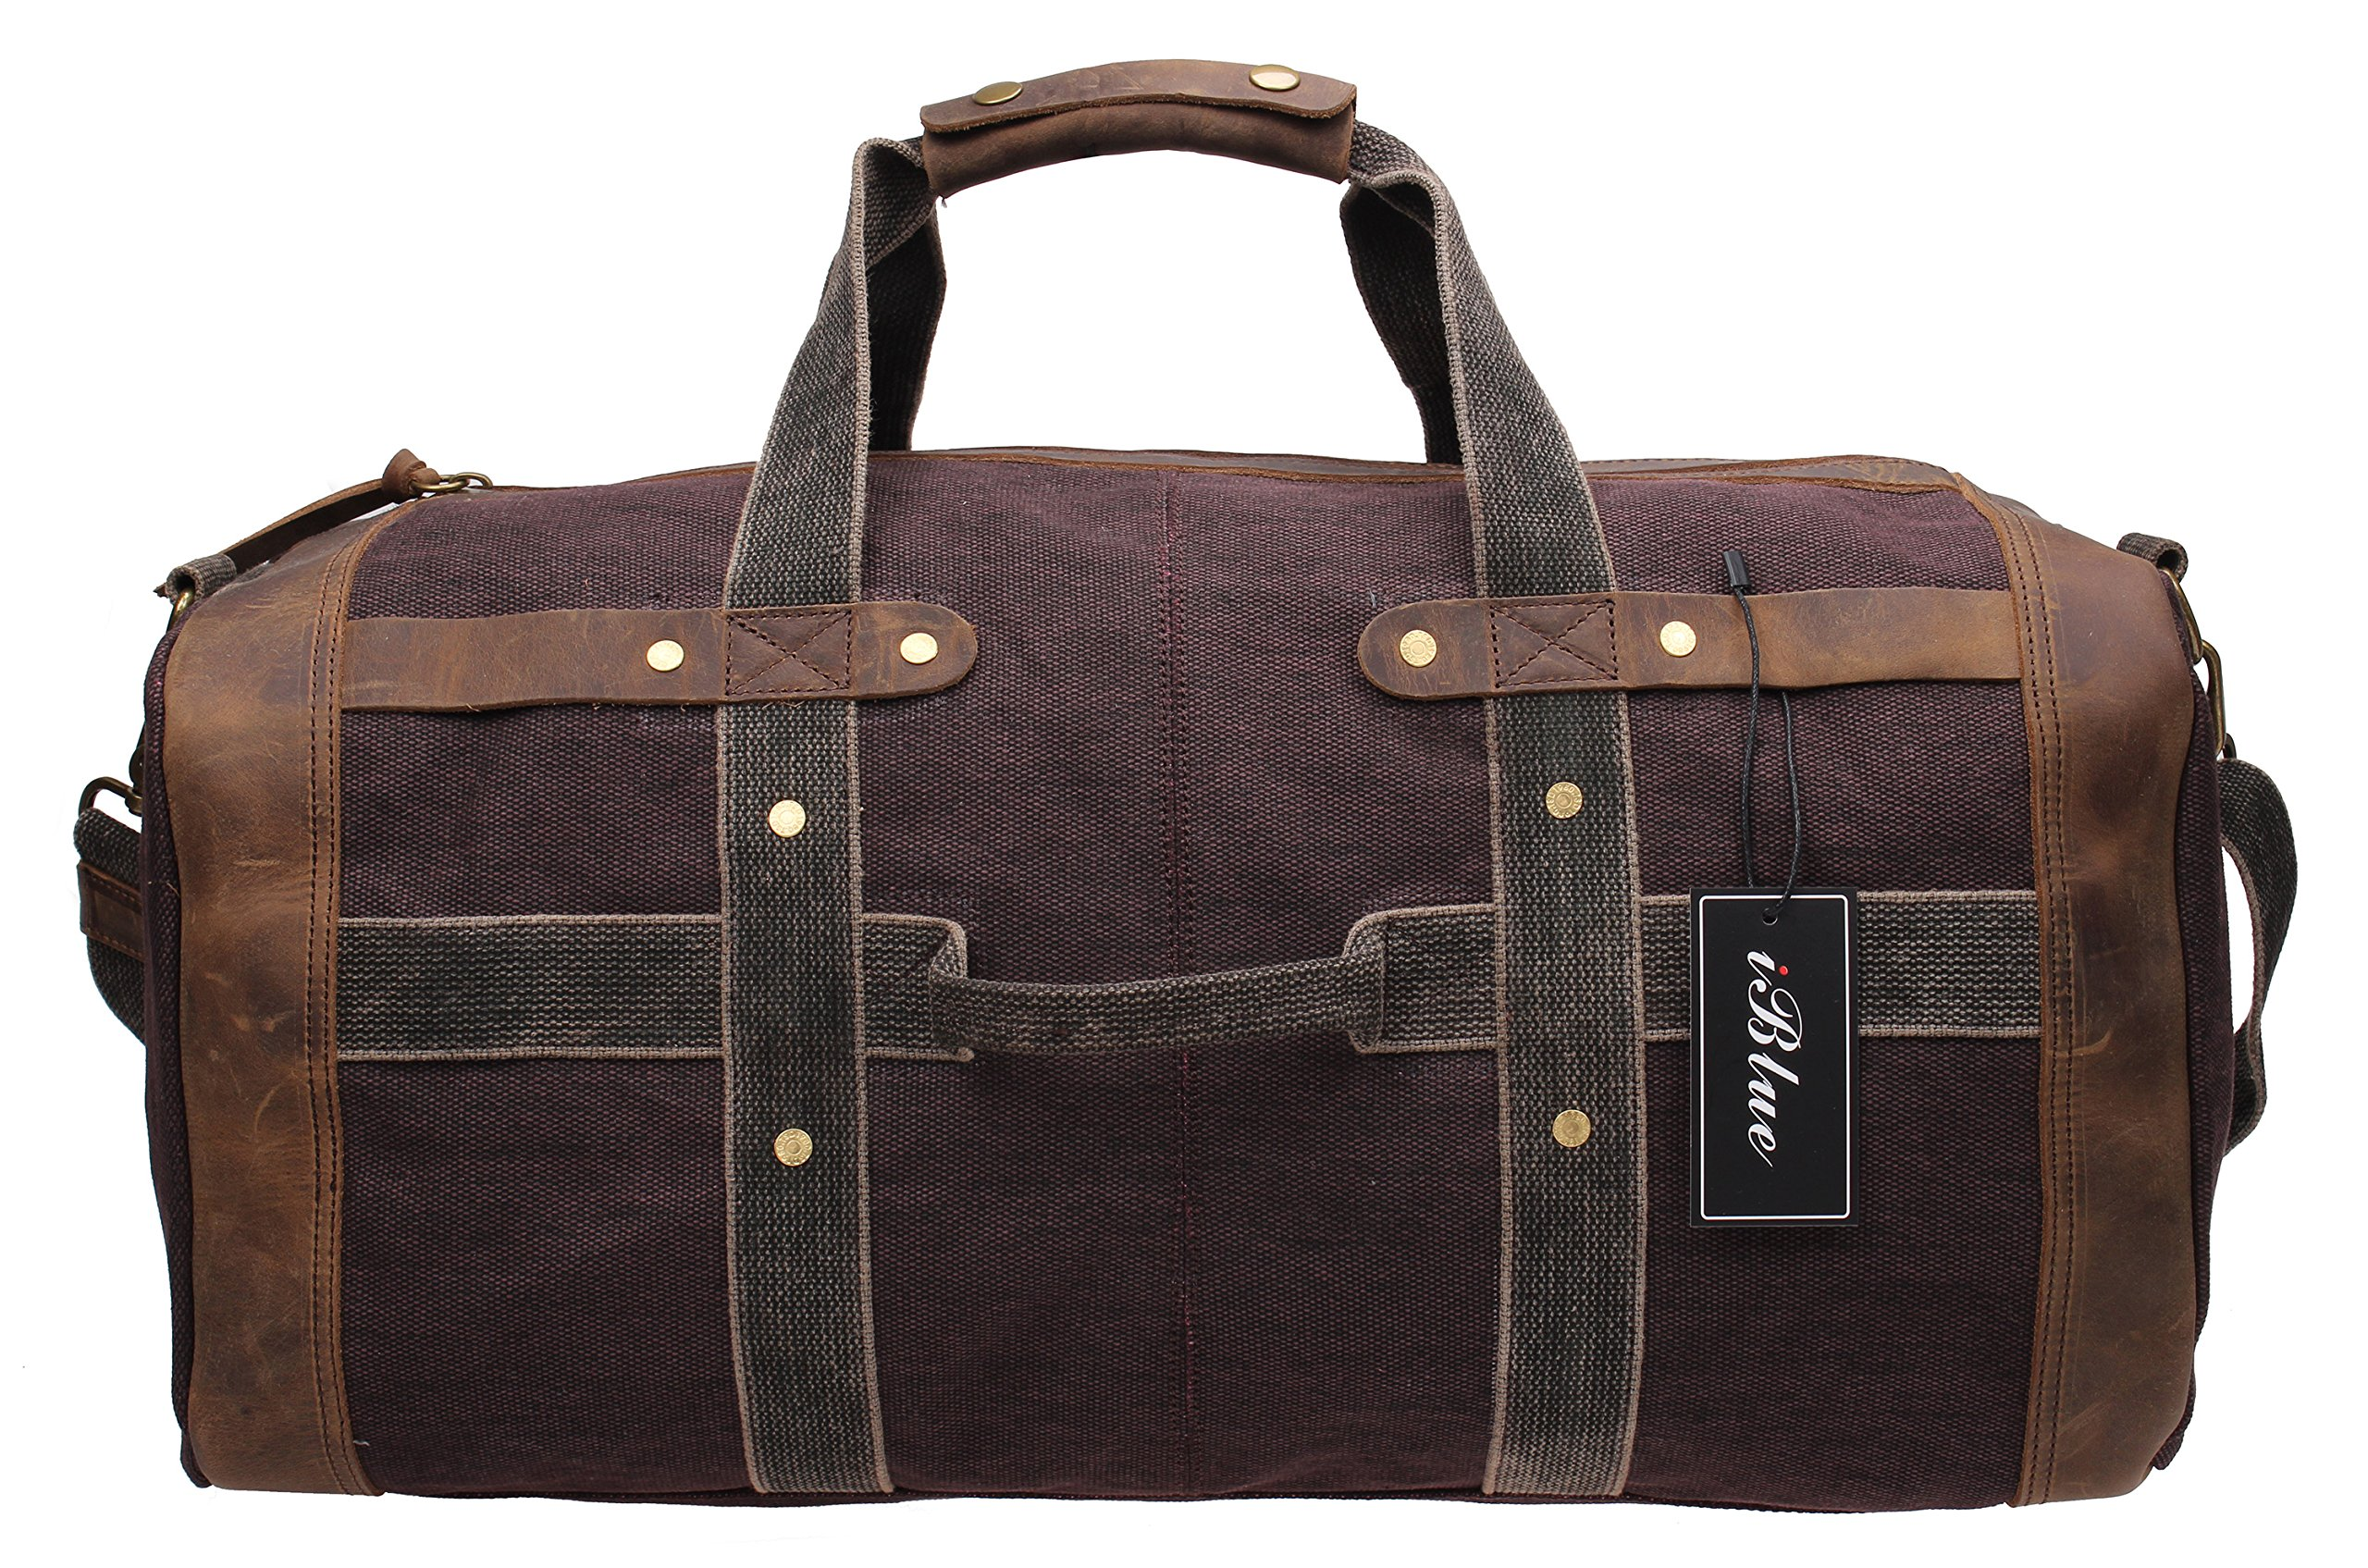 Iblue Weekend Bag Travel Duffel Bags For Men Canvas Carry On #B007(XL, coffee) by iblue (Image #2)